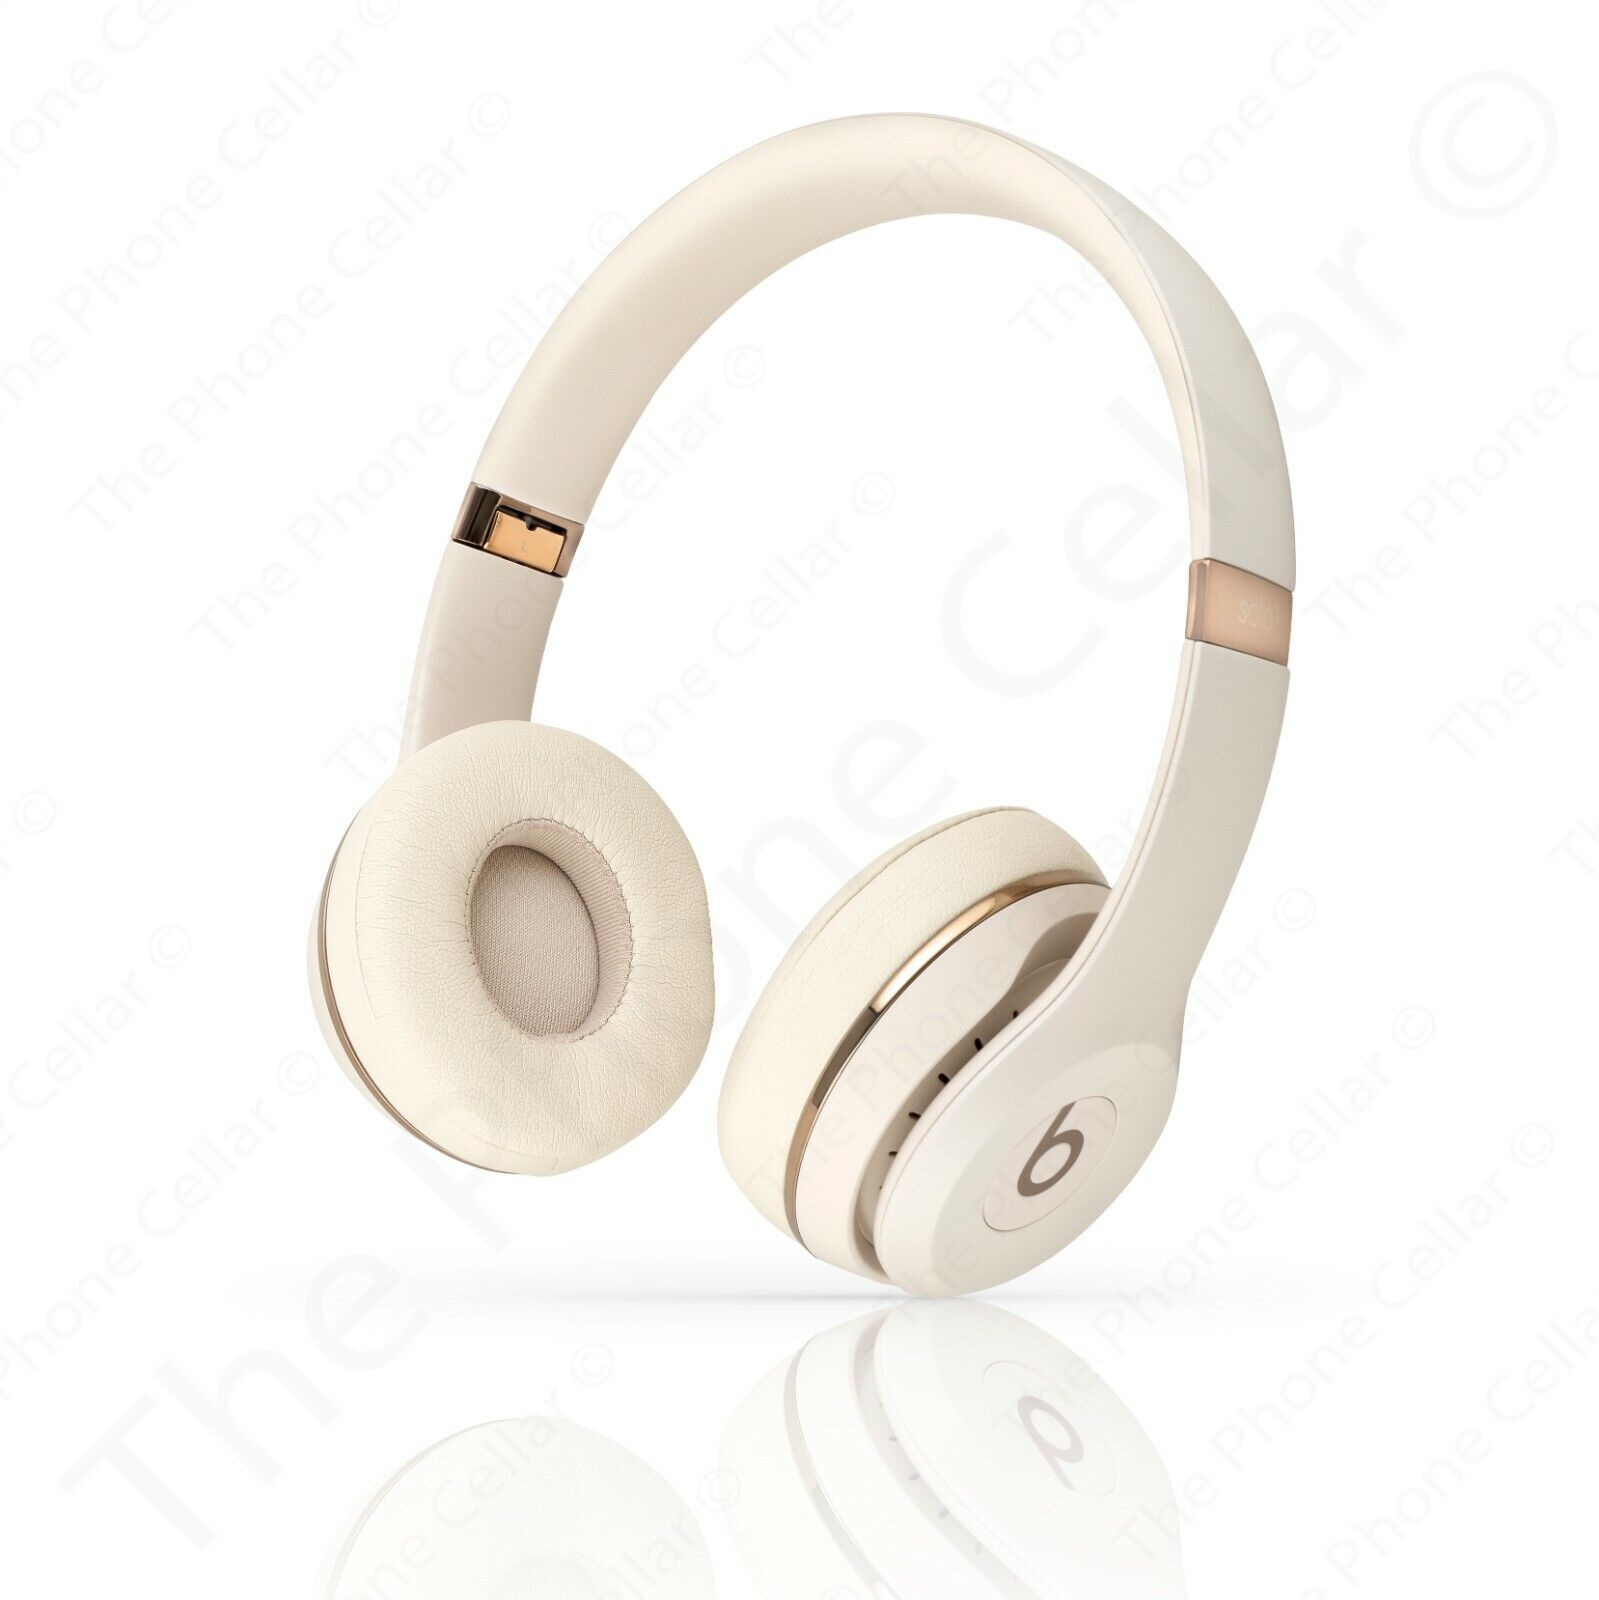 Apple Beats By Dr Dre Solo3 Wireless Stereo Headphones Muh42ll A Satin Gold 190198936752 Ebay